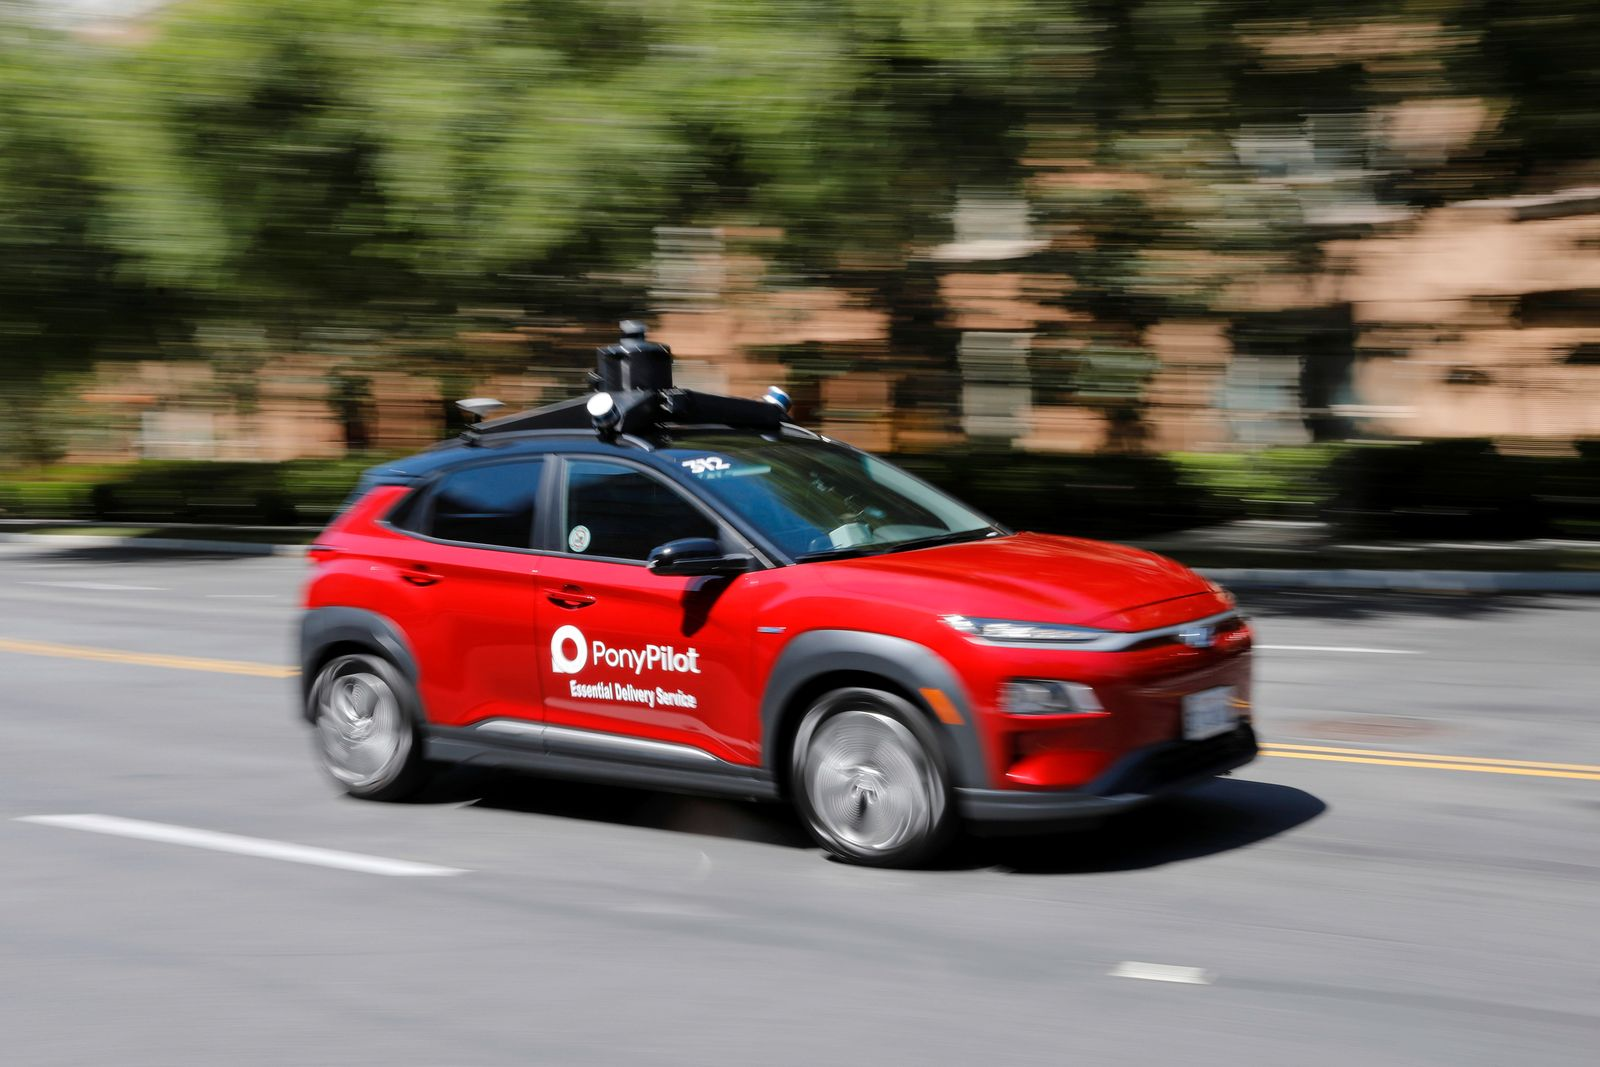 Autonomous electric vehicles deliver packages during the outbreak of the coronavirus disease (COVID-19) in California